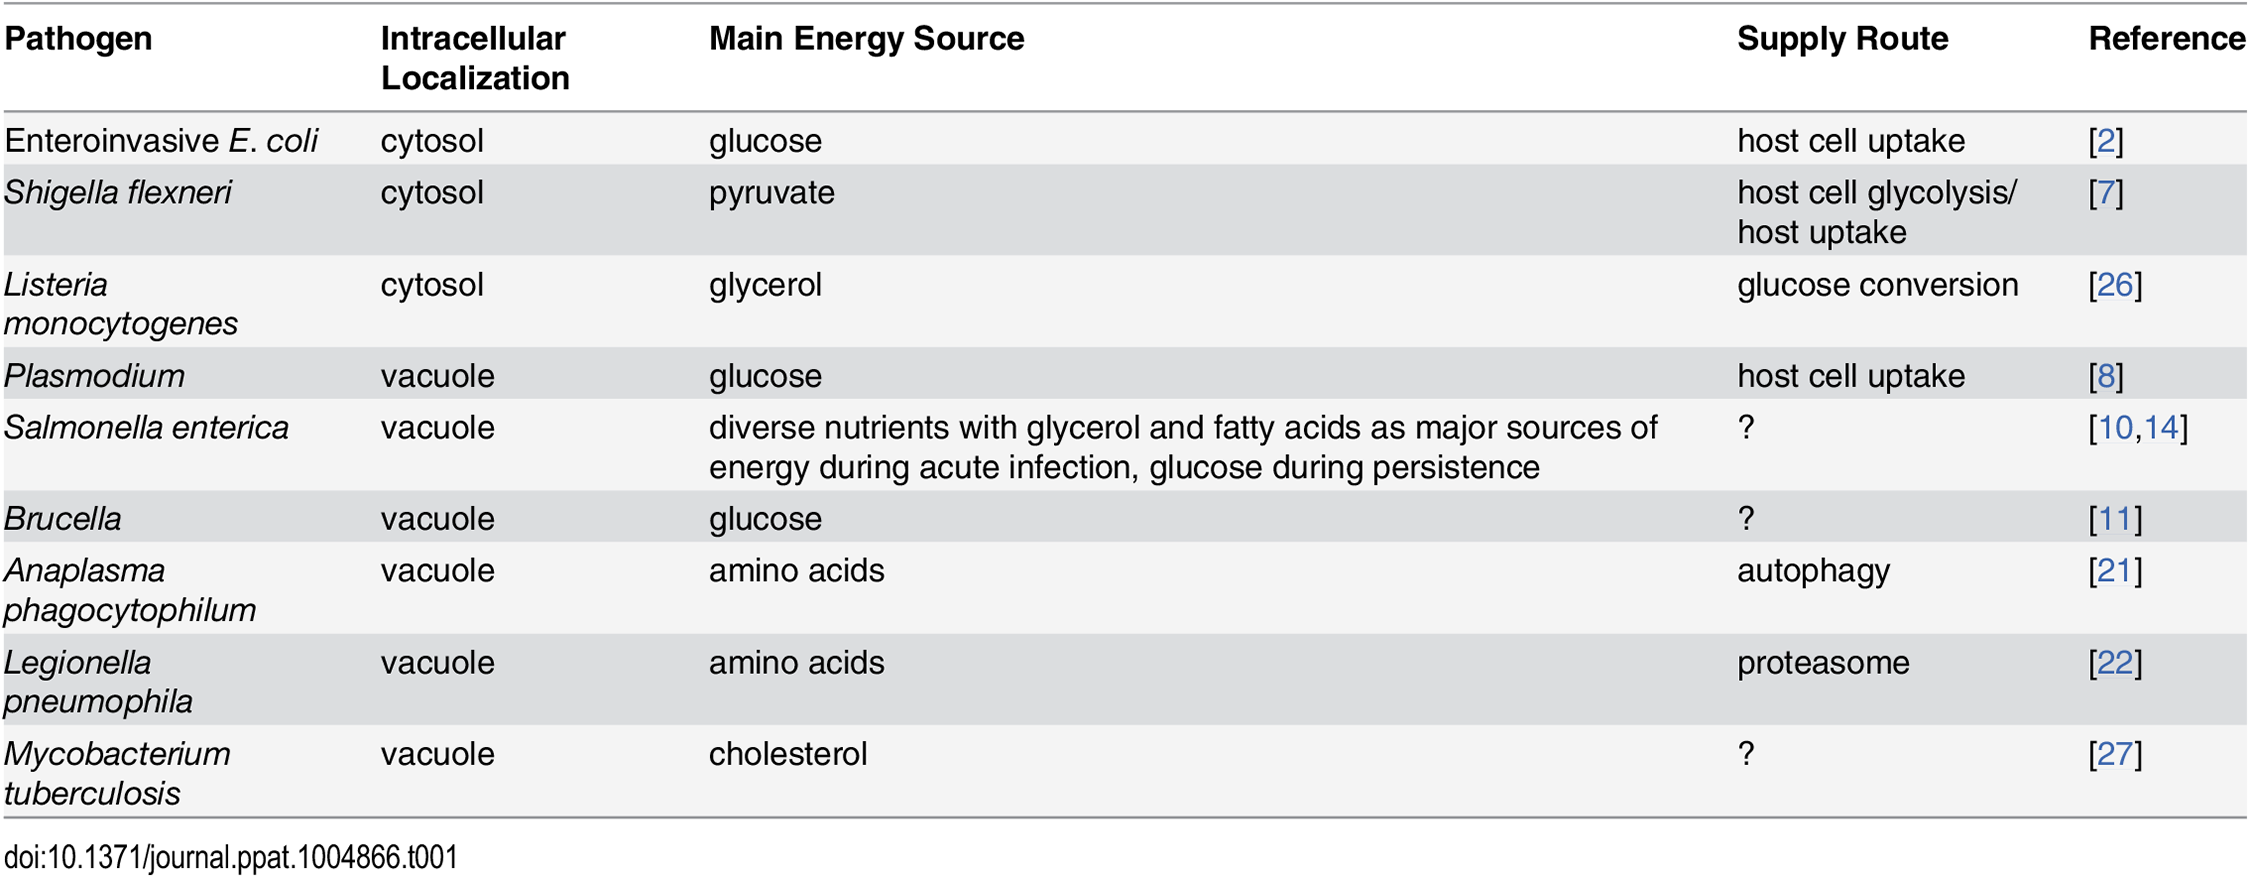 Main energy sources of intracellular pathogens.